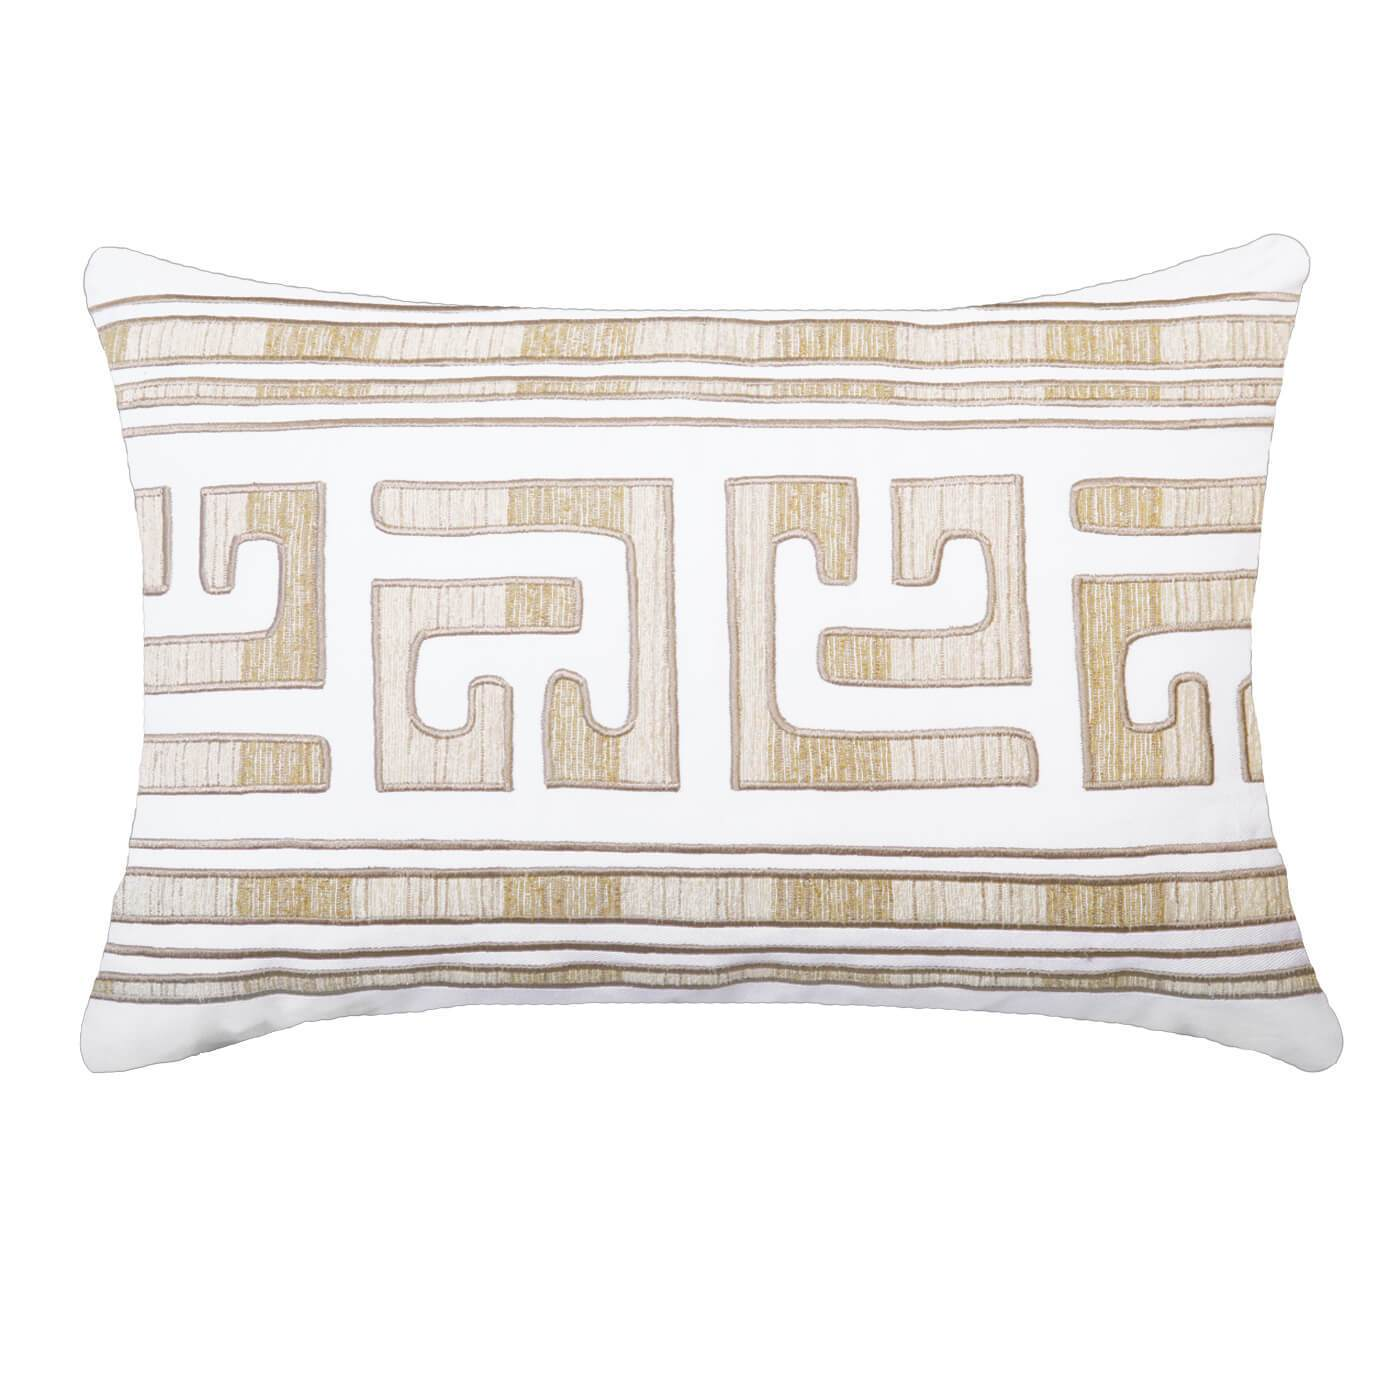 "Bandhini Homewear Design Lumber Cushion White / Exotic Dark / 14"" x 21"" Shoowa Kuba White Lumber Cushion 35 x 53 cm"